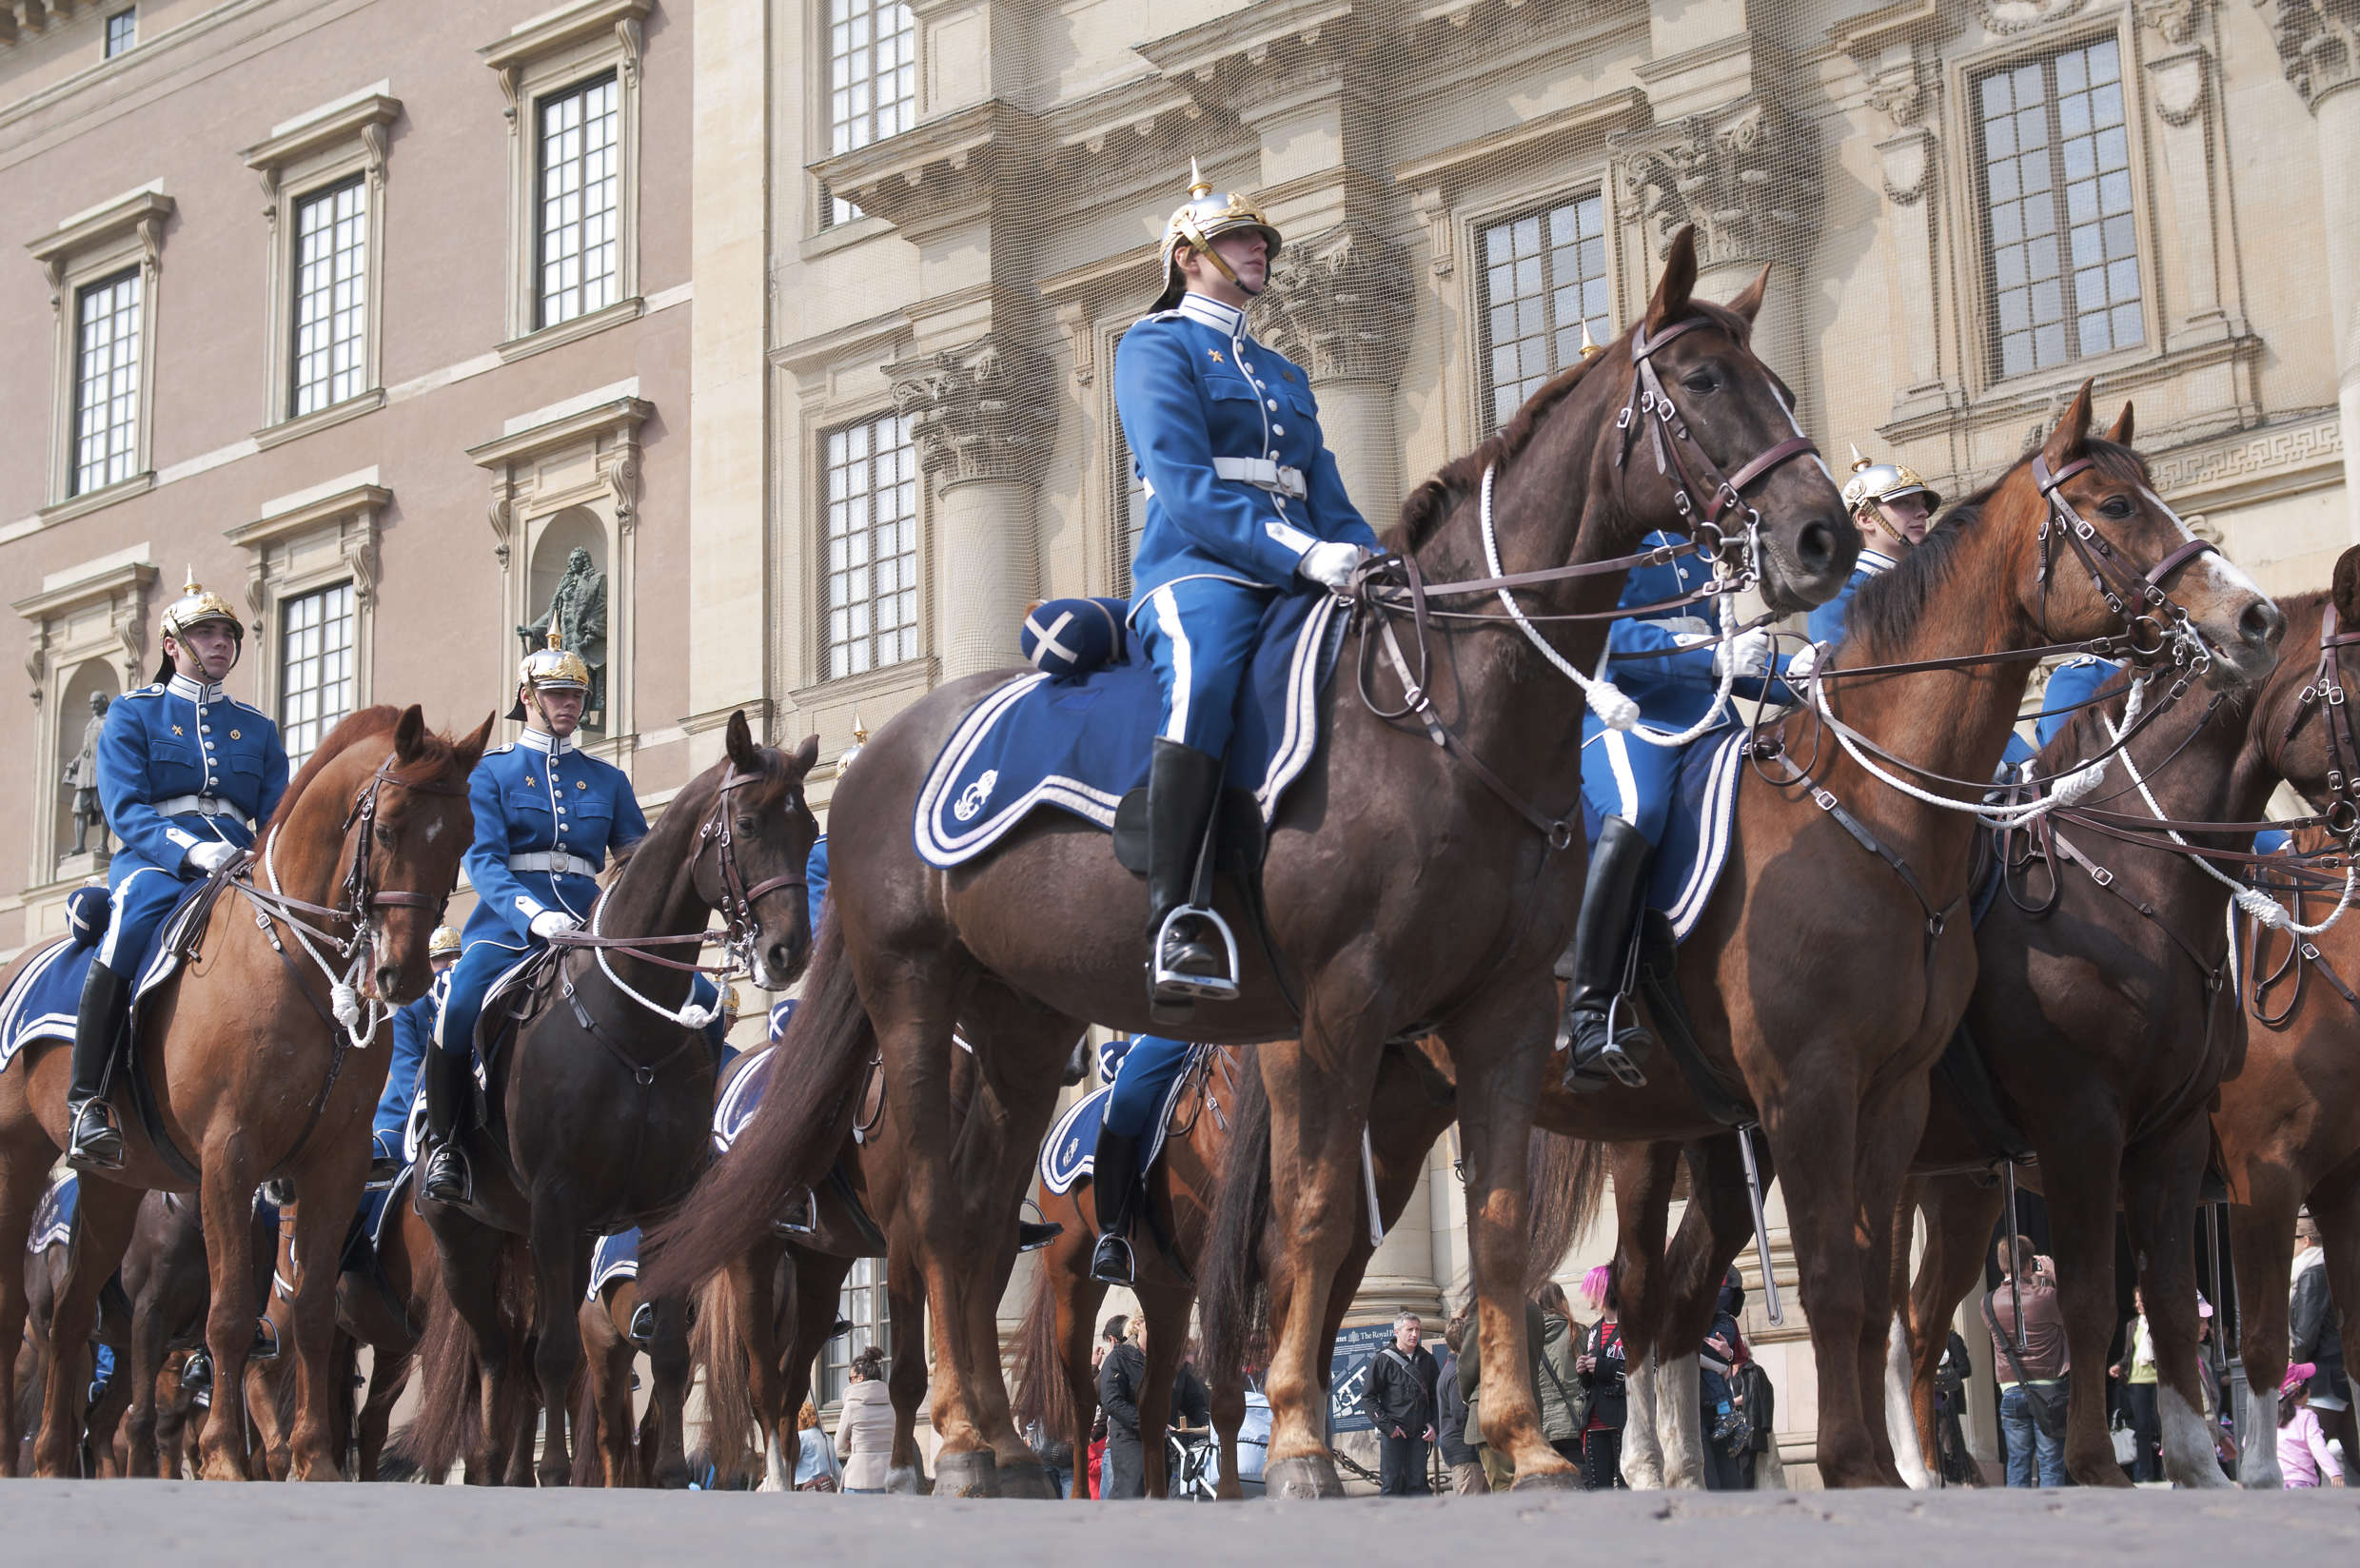 Royal_Guards_on_horses_3_Photo_Staffan Eliasson